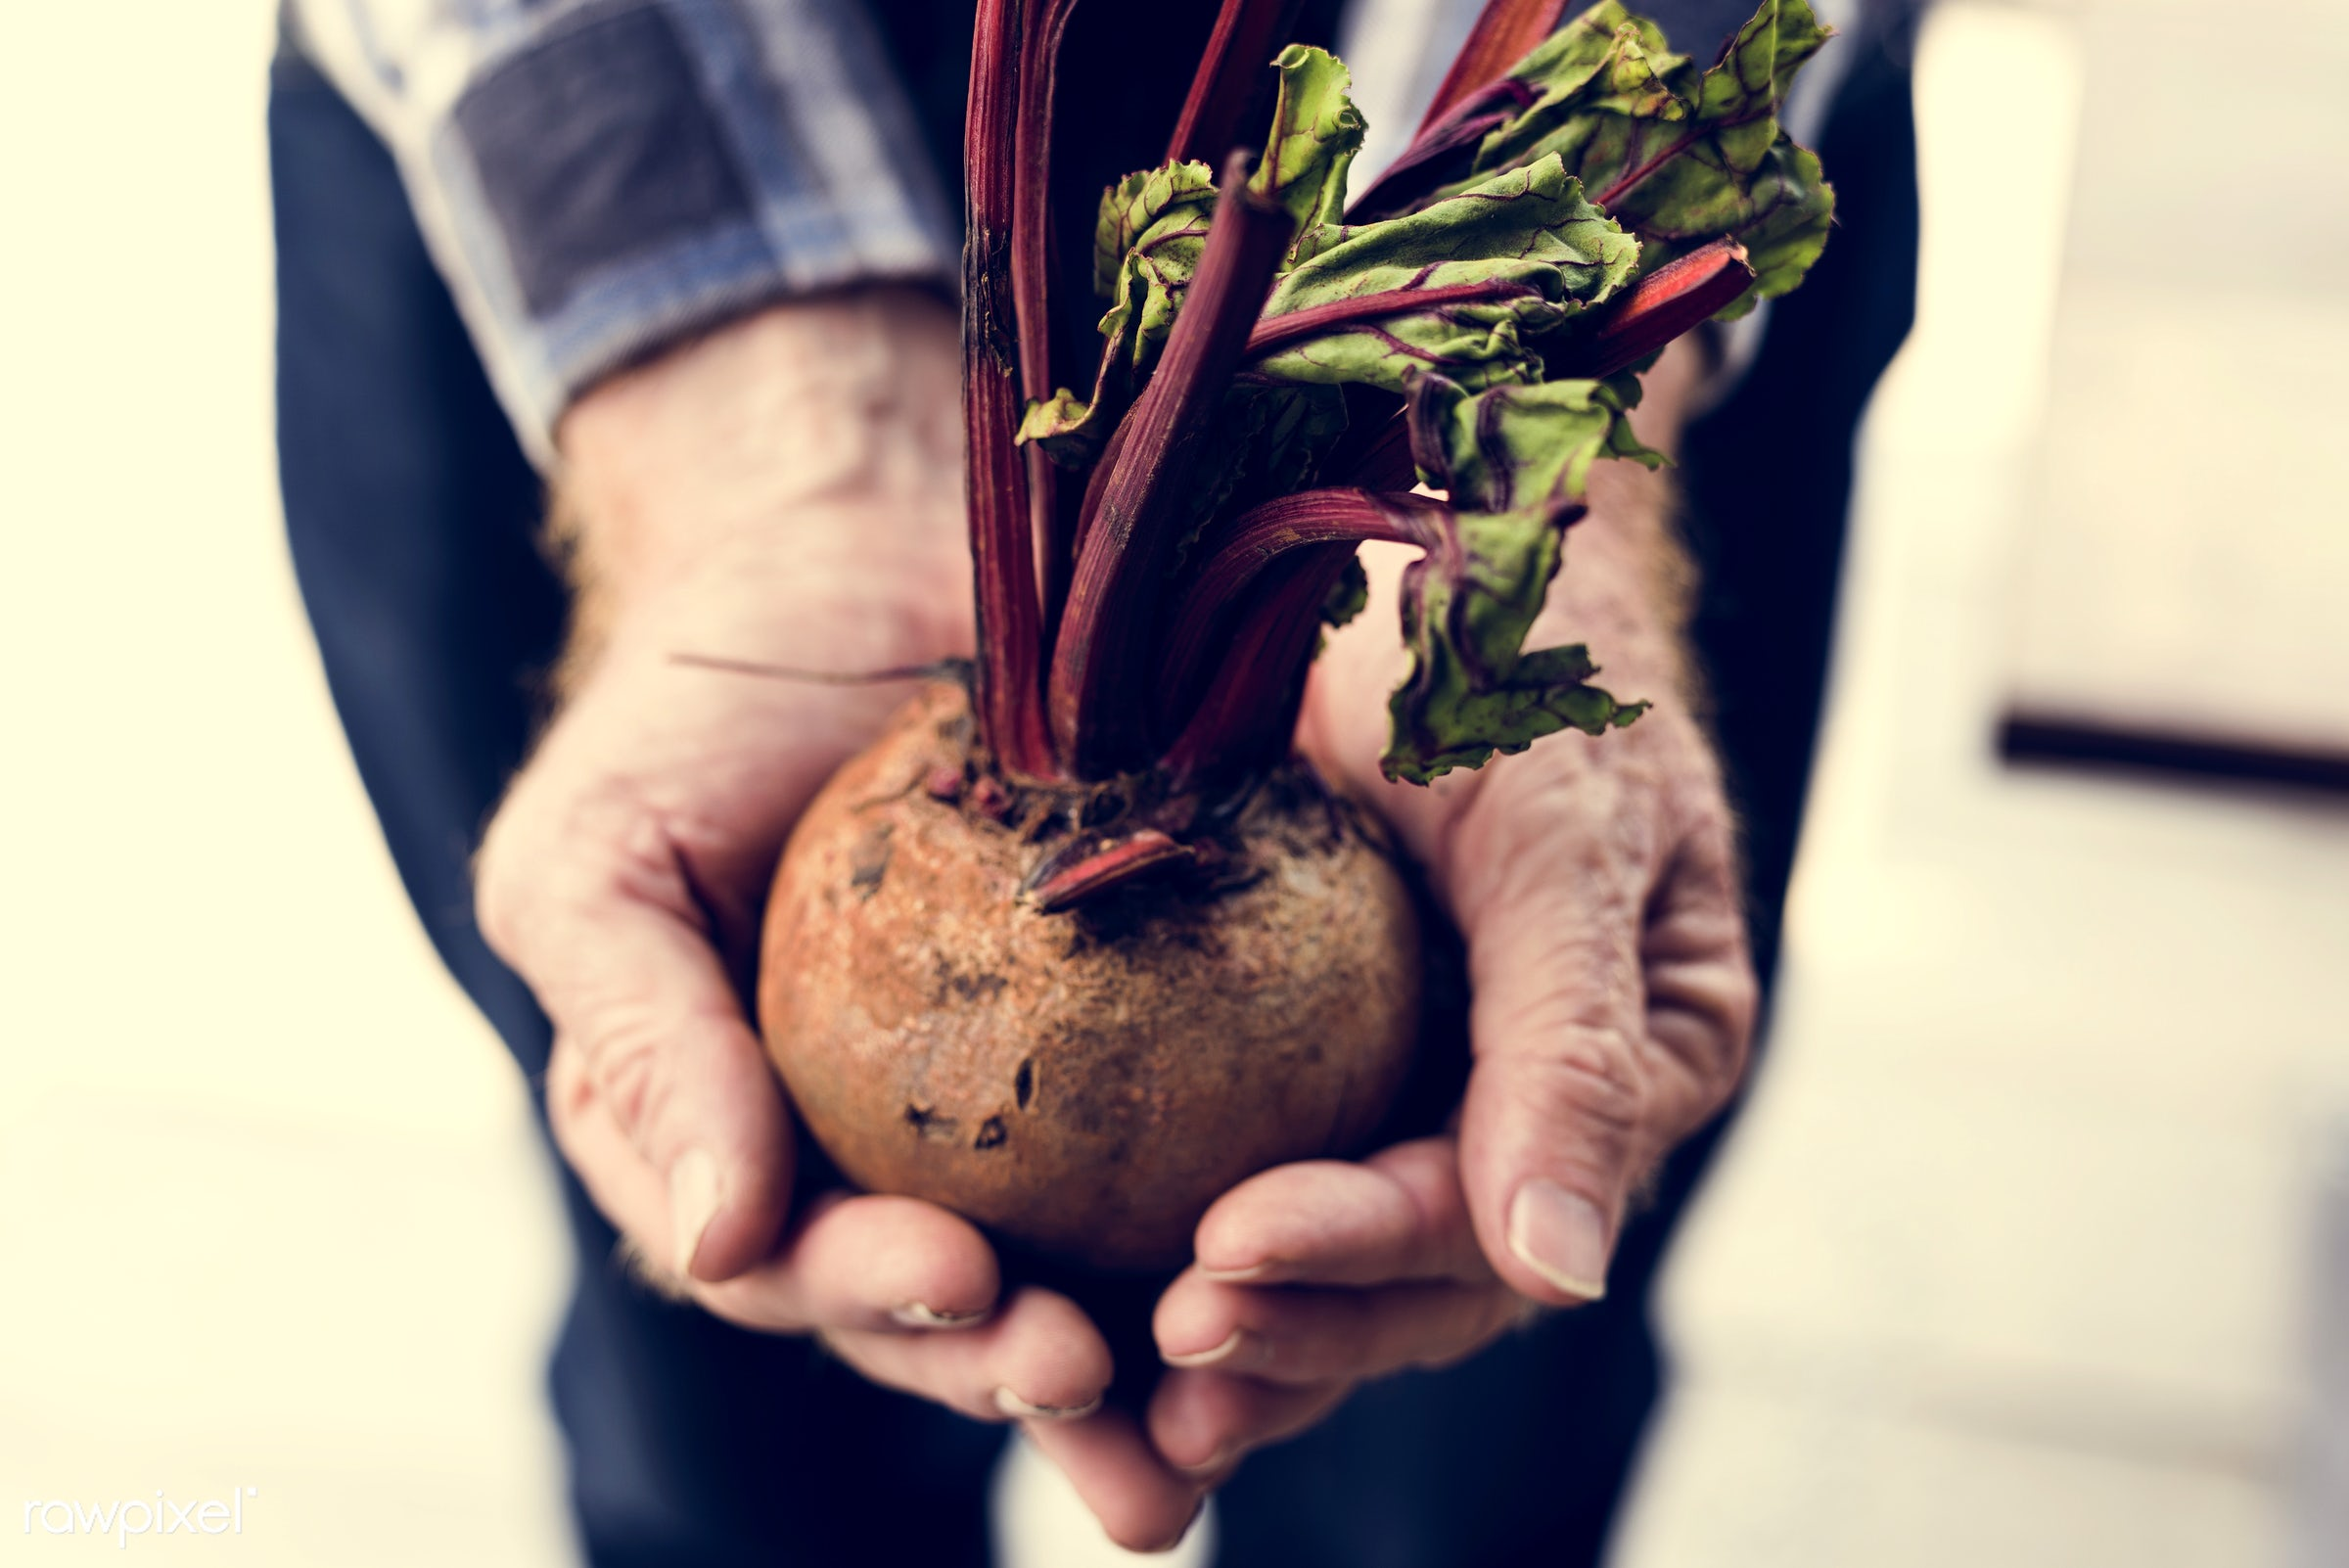 raw, plant, concept, botany, people, hand, nature, farmer, conservation, fresh, care, vegetarian, ecology, hold, season,...